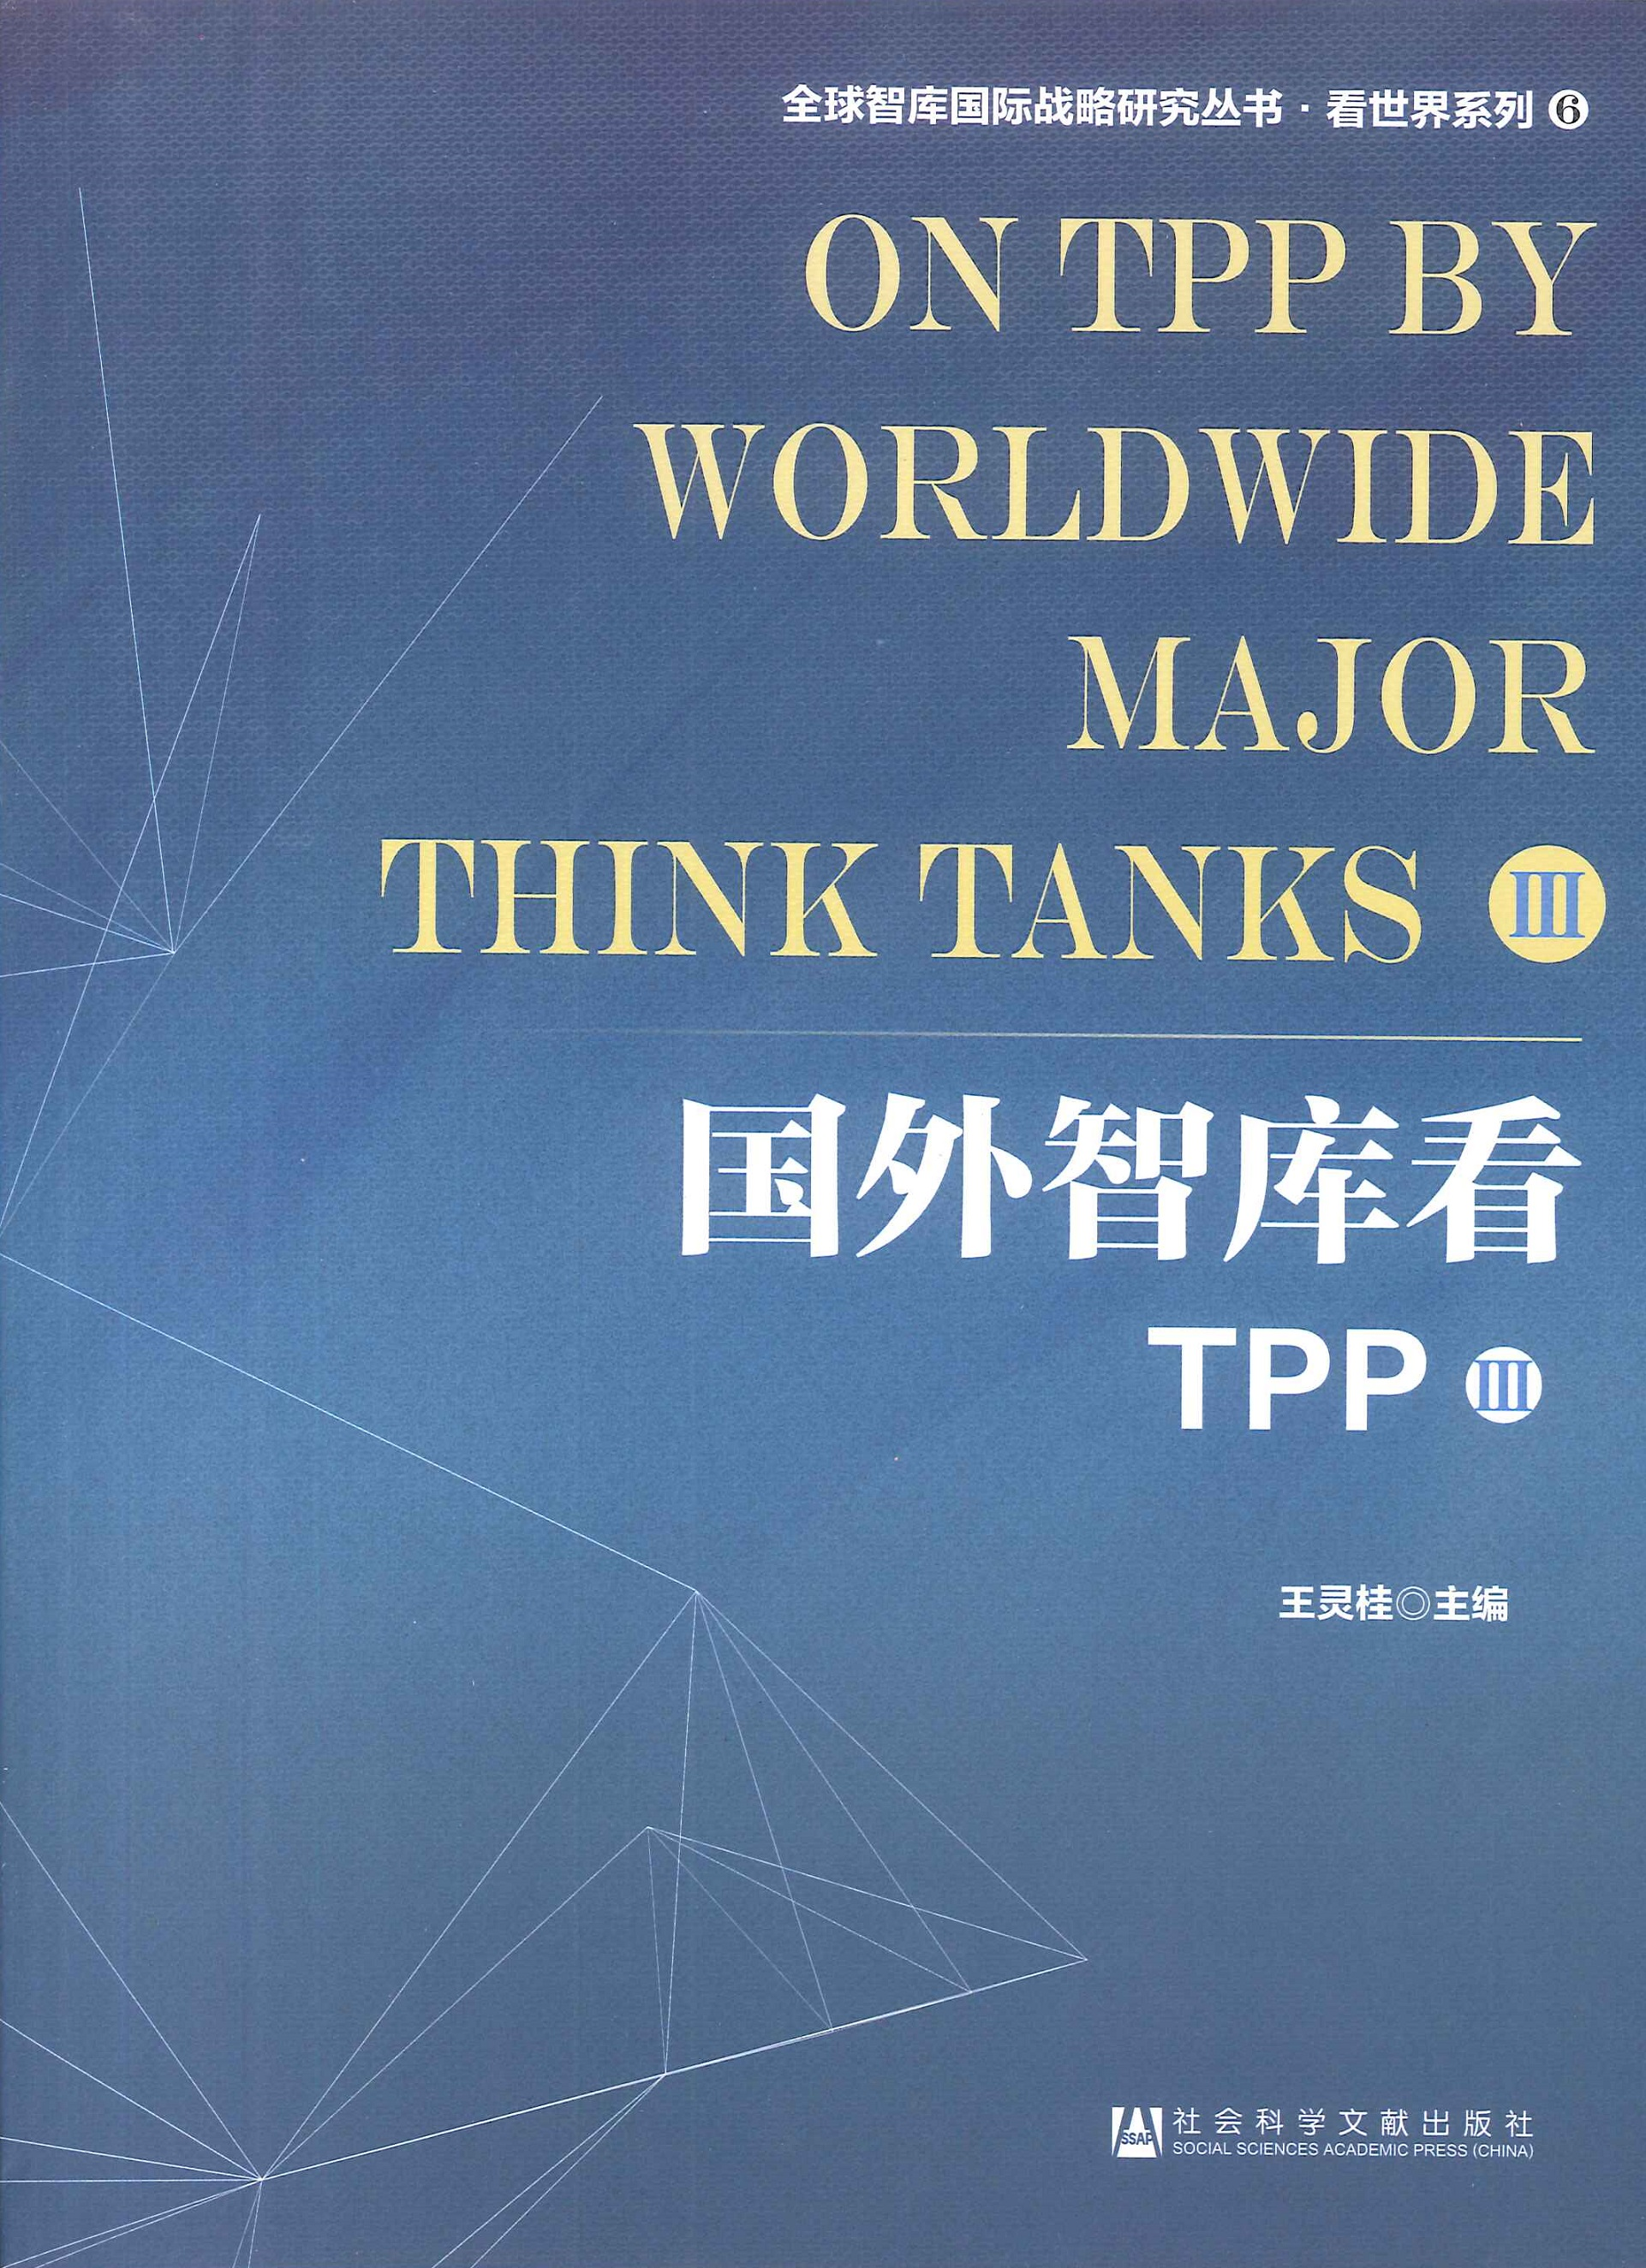 国外智库看TPP.III=On TPP by worldwide major think tanks